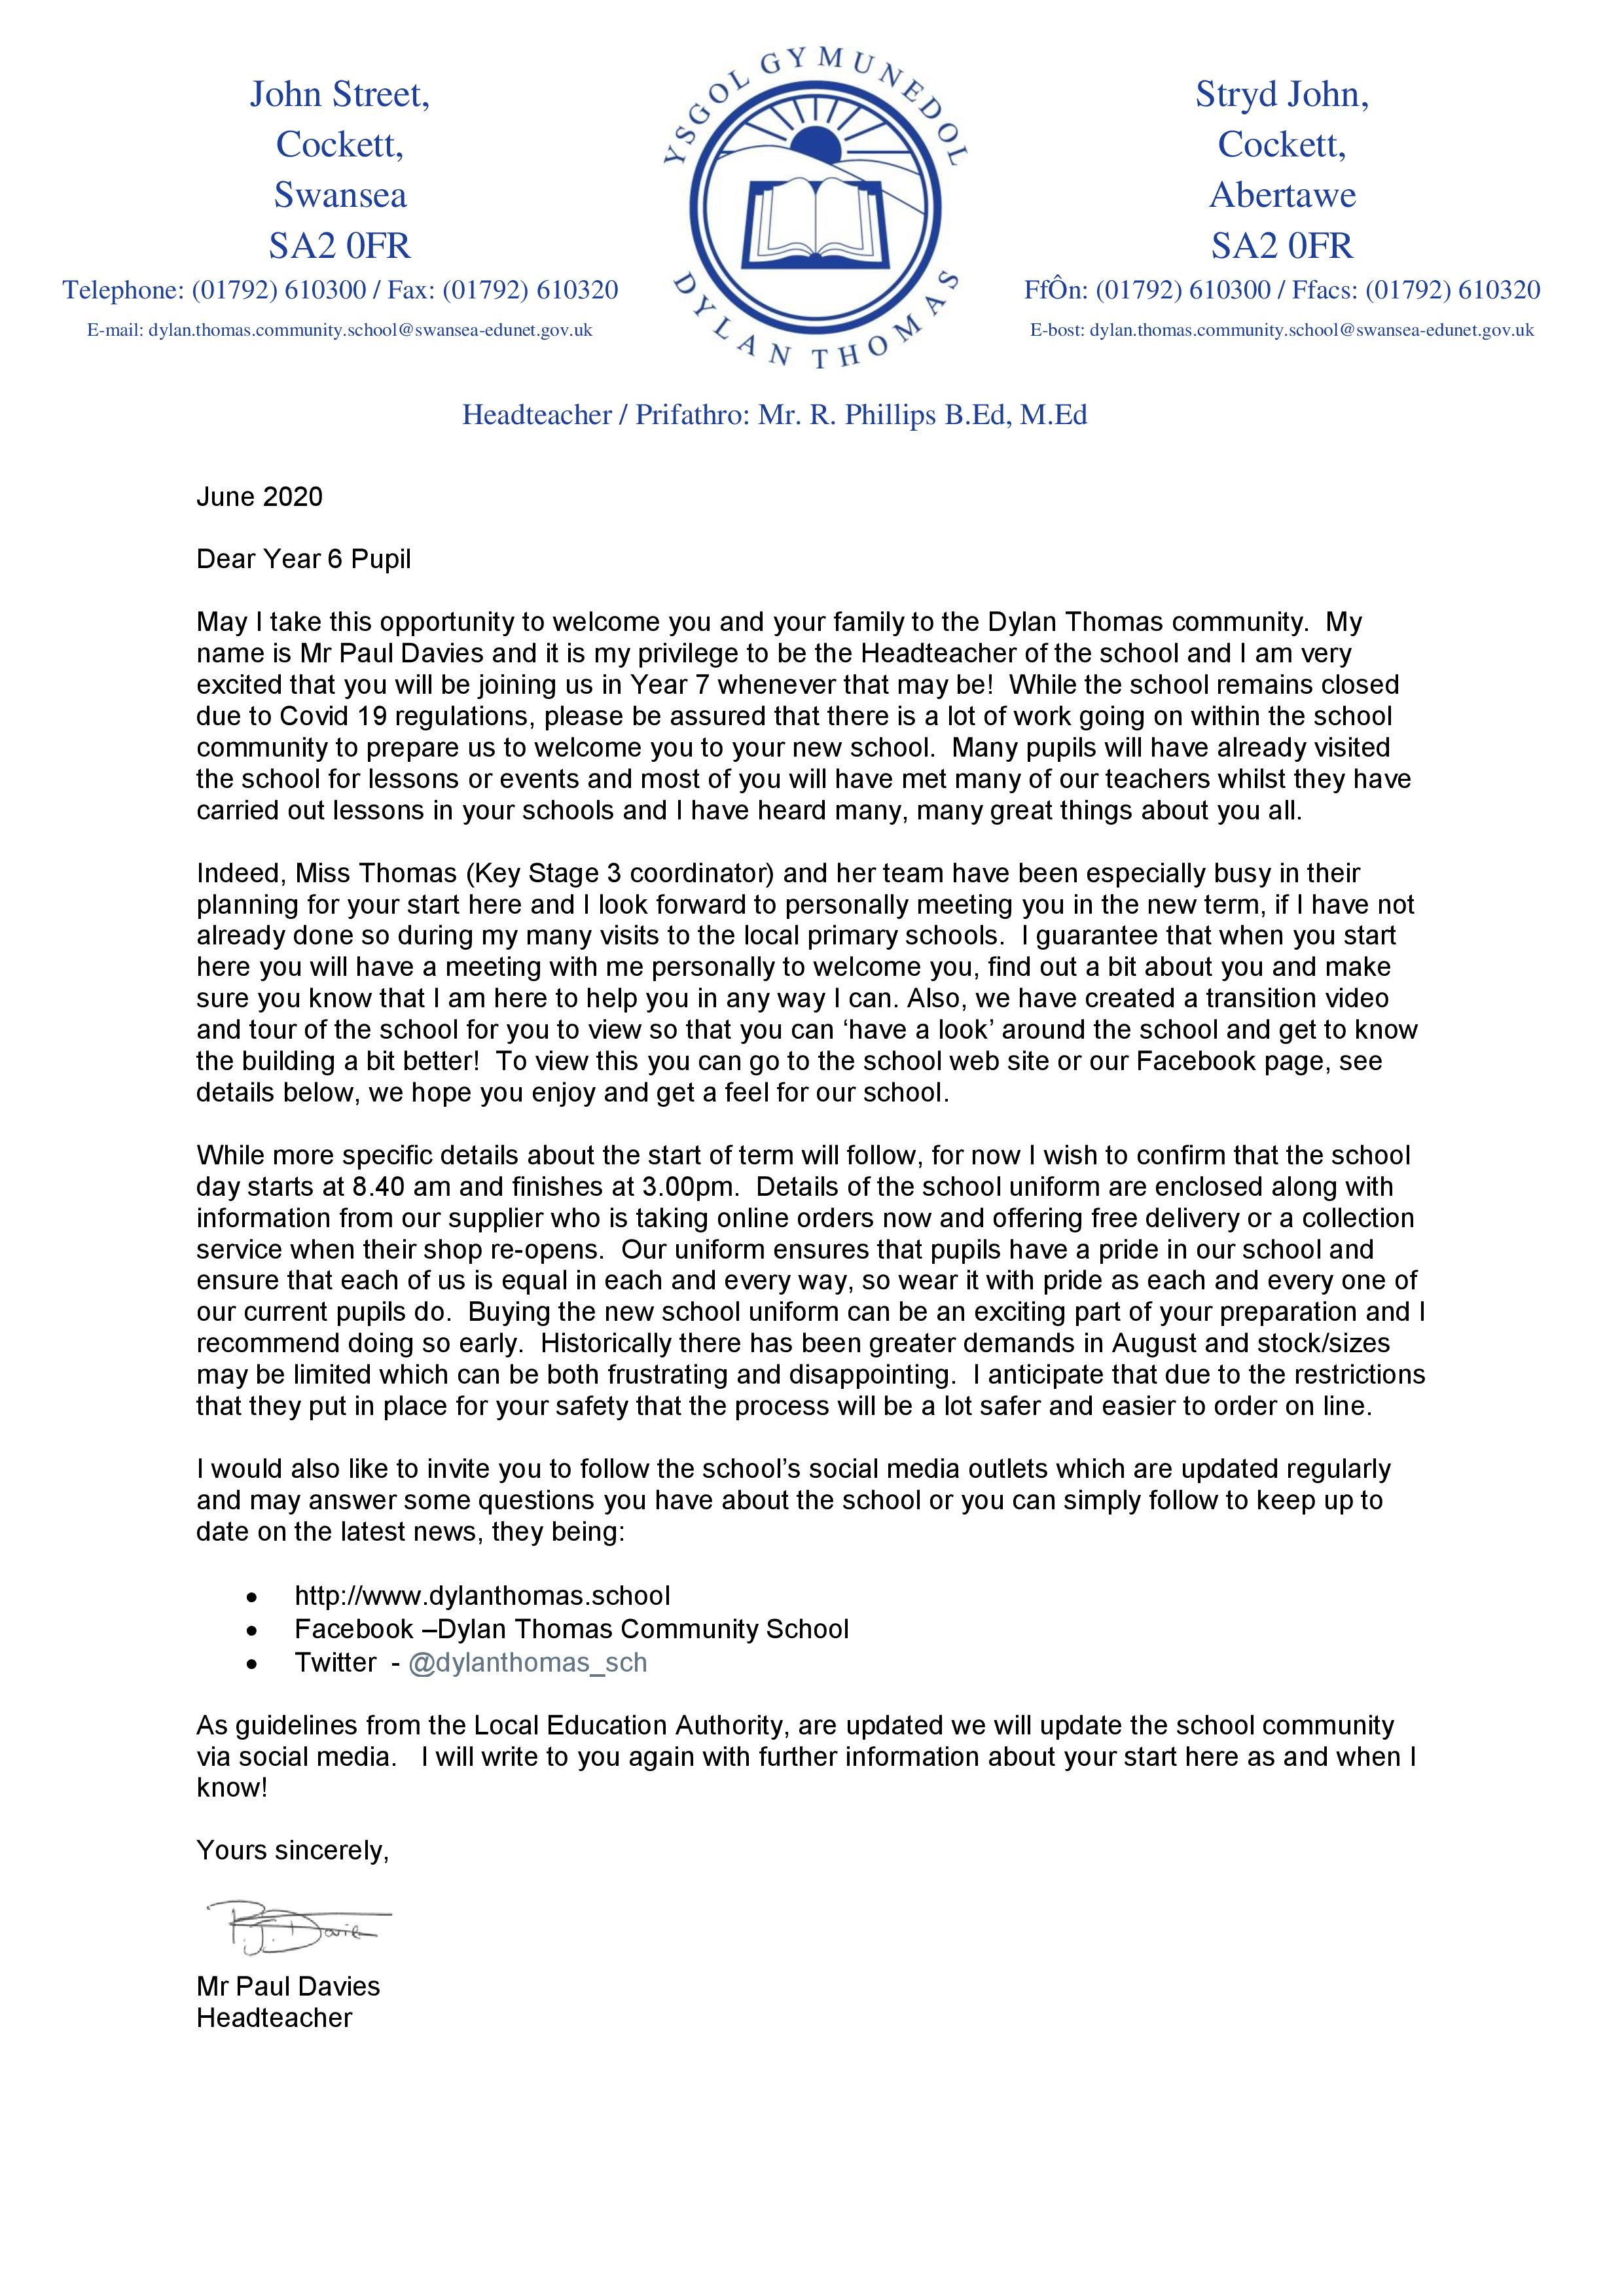 June 2020 Letter from Headteacher to pupils allocated Year 7 place Sept 2020-page-001.jpg